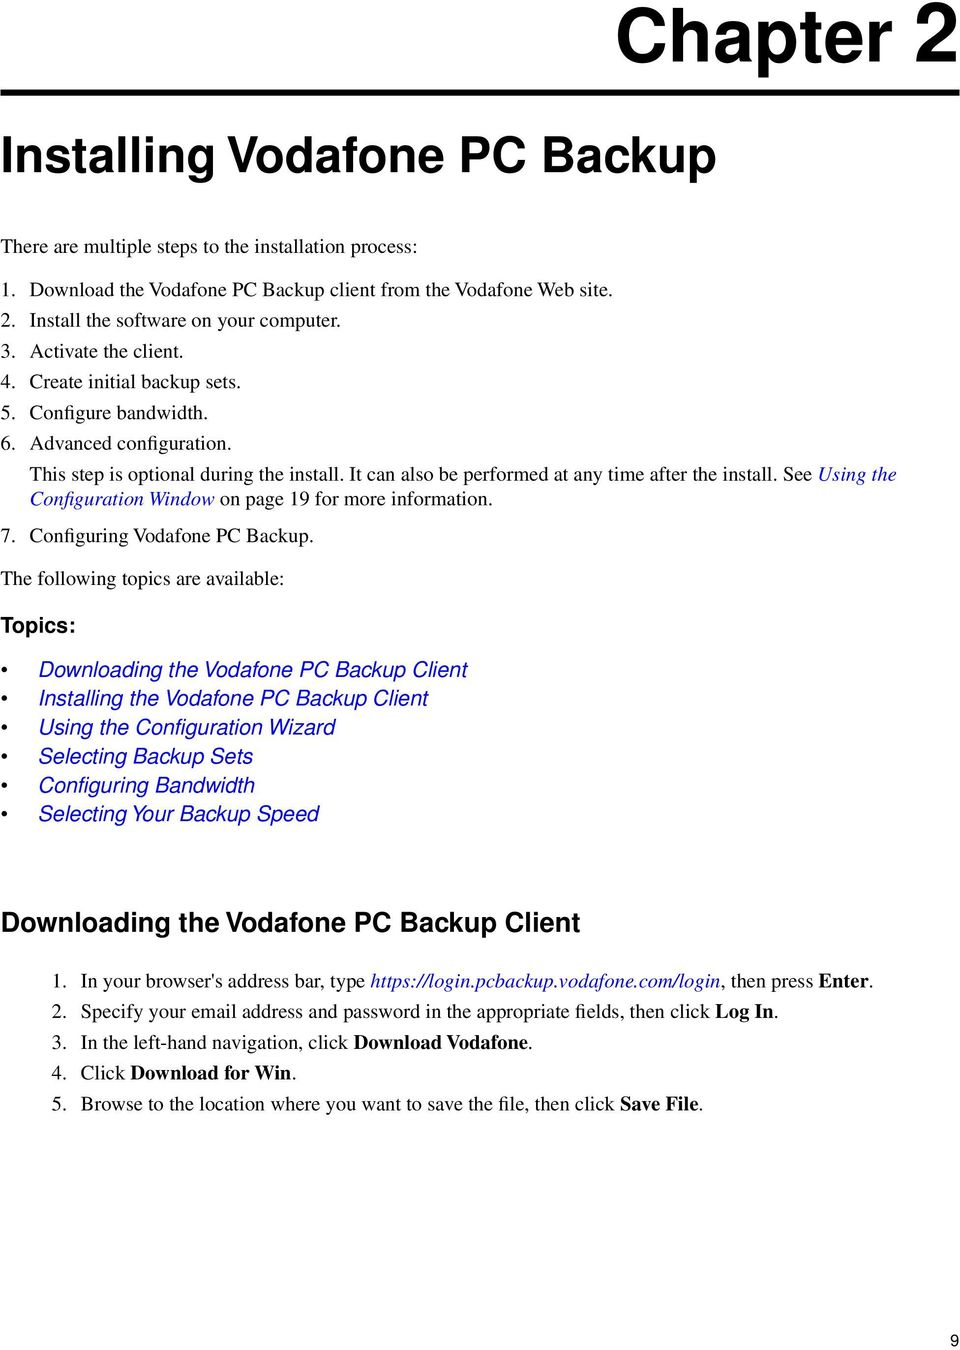 It can also be performed at any time after the install. See Using the Configuration Window on page 19 for more information. 7. Configuring Vodafone PC Backup.